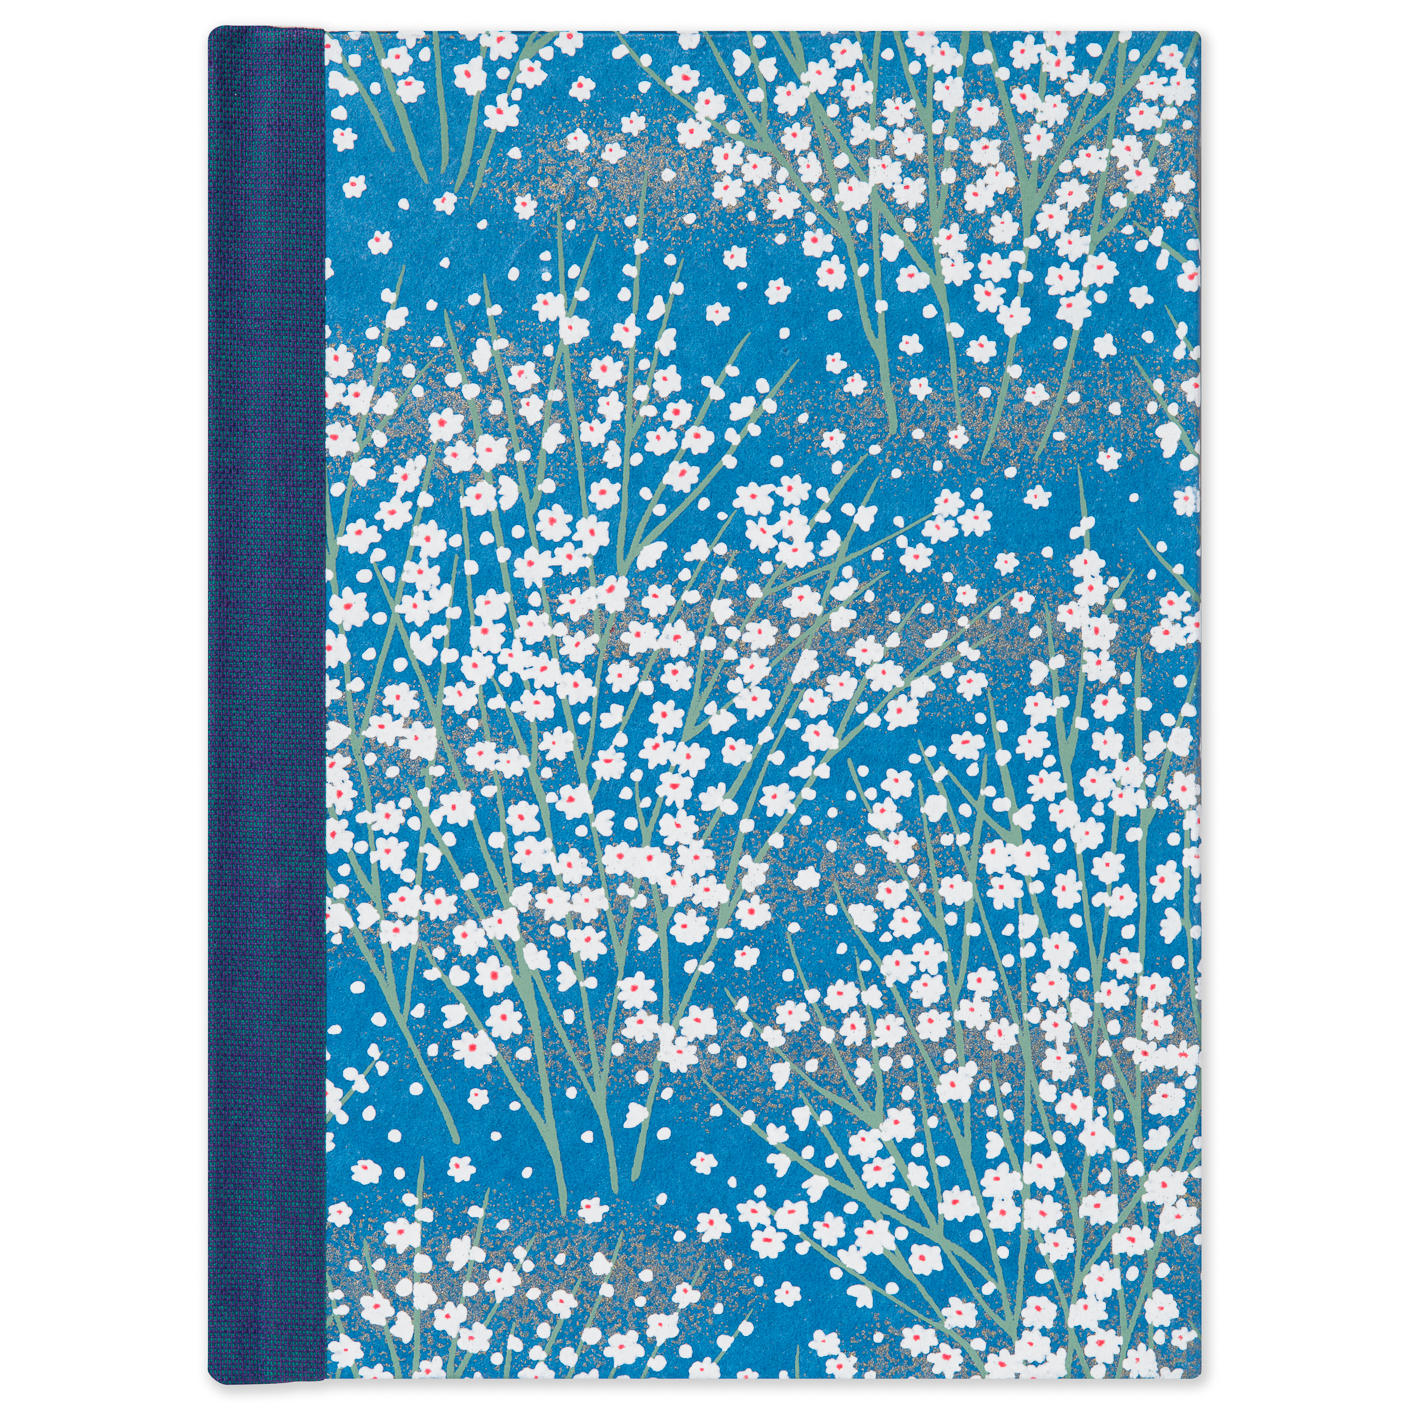 White Blossom Small Ruled Journal